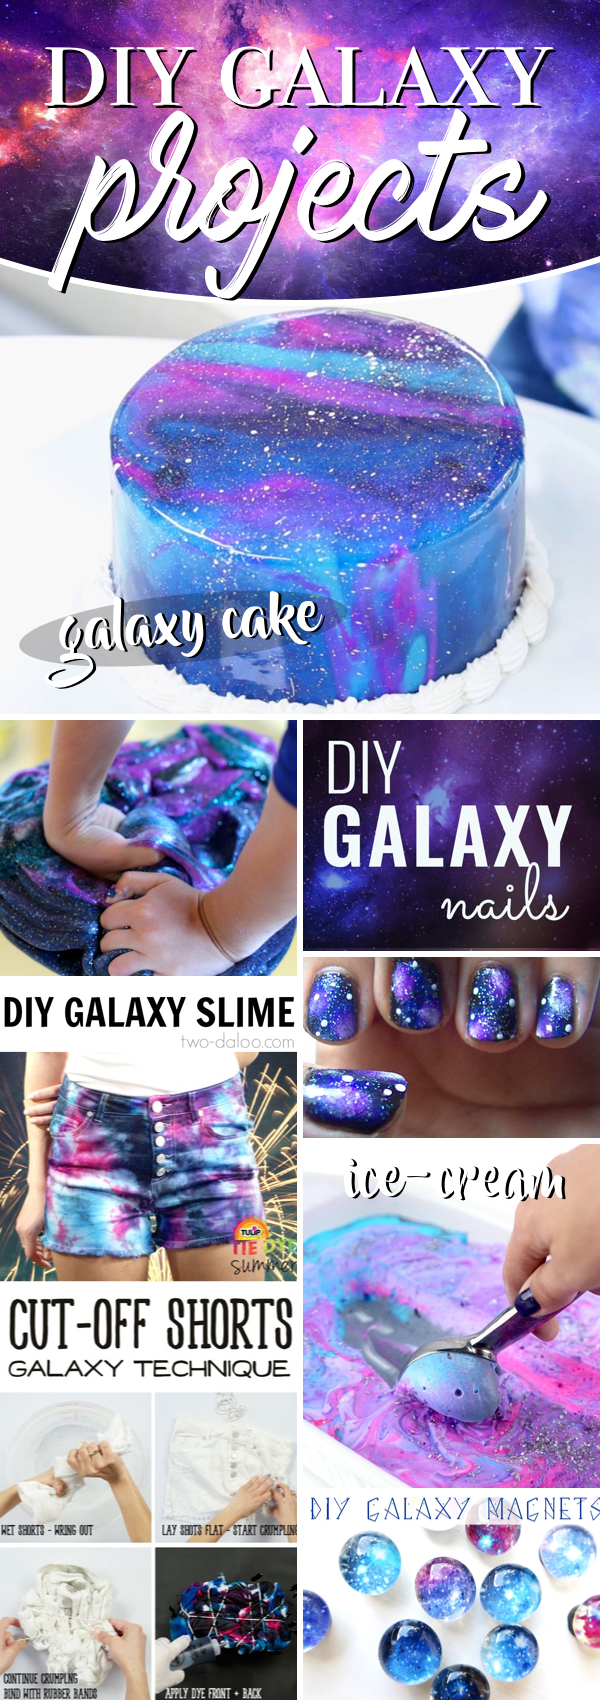 25 DIY Galaxy Projects Rightly Celebrating the Universe We are a Part Of